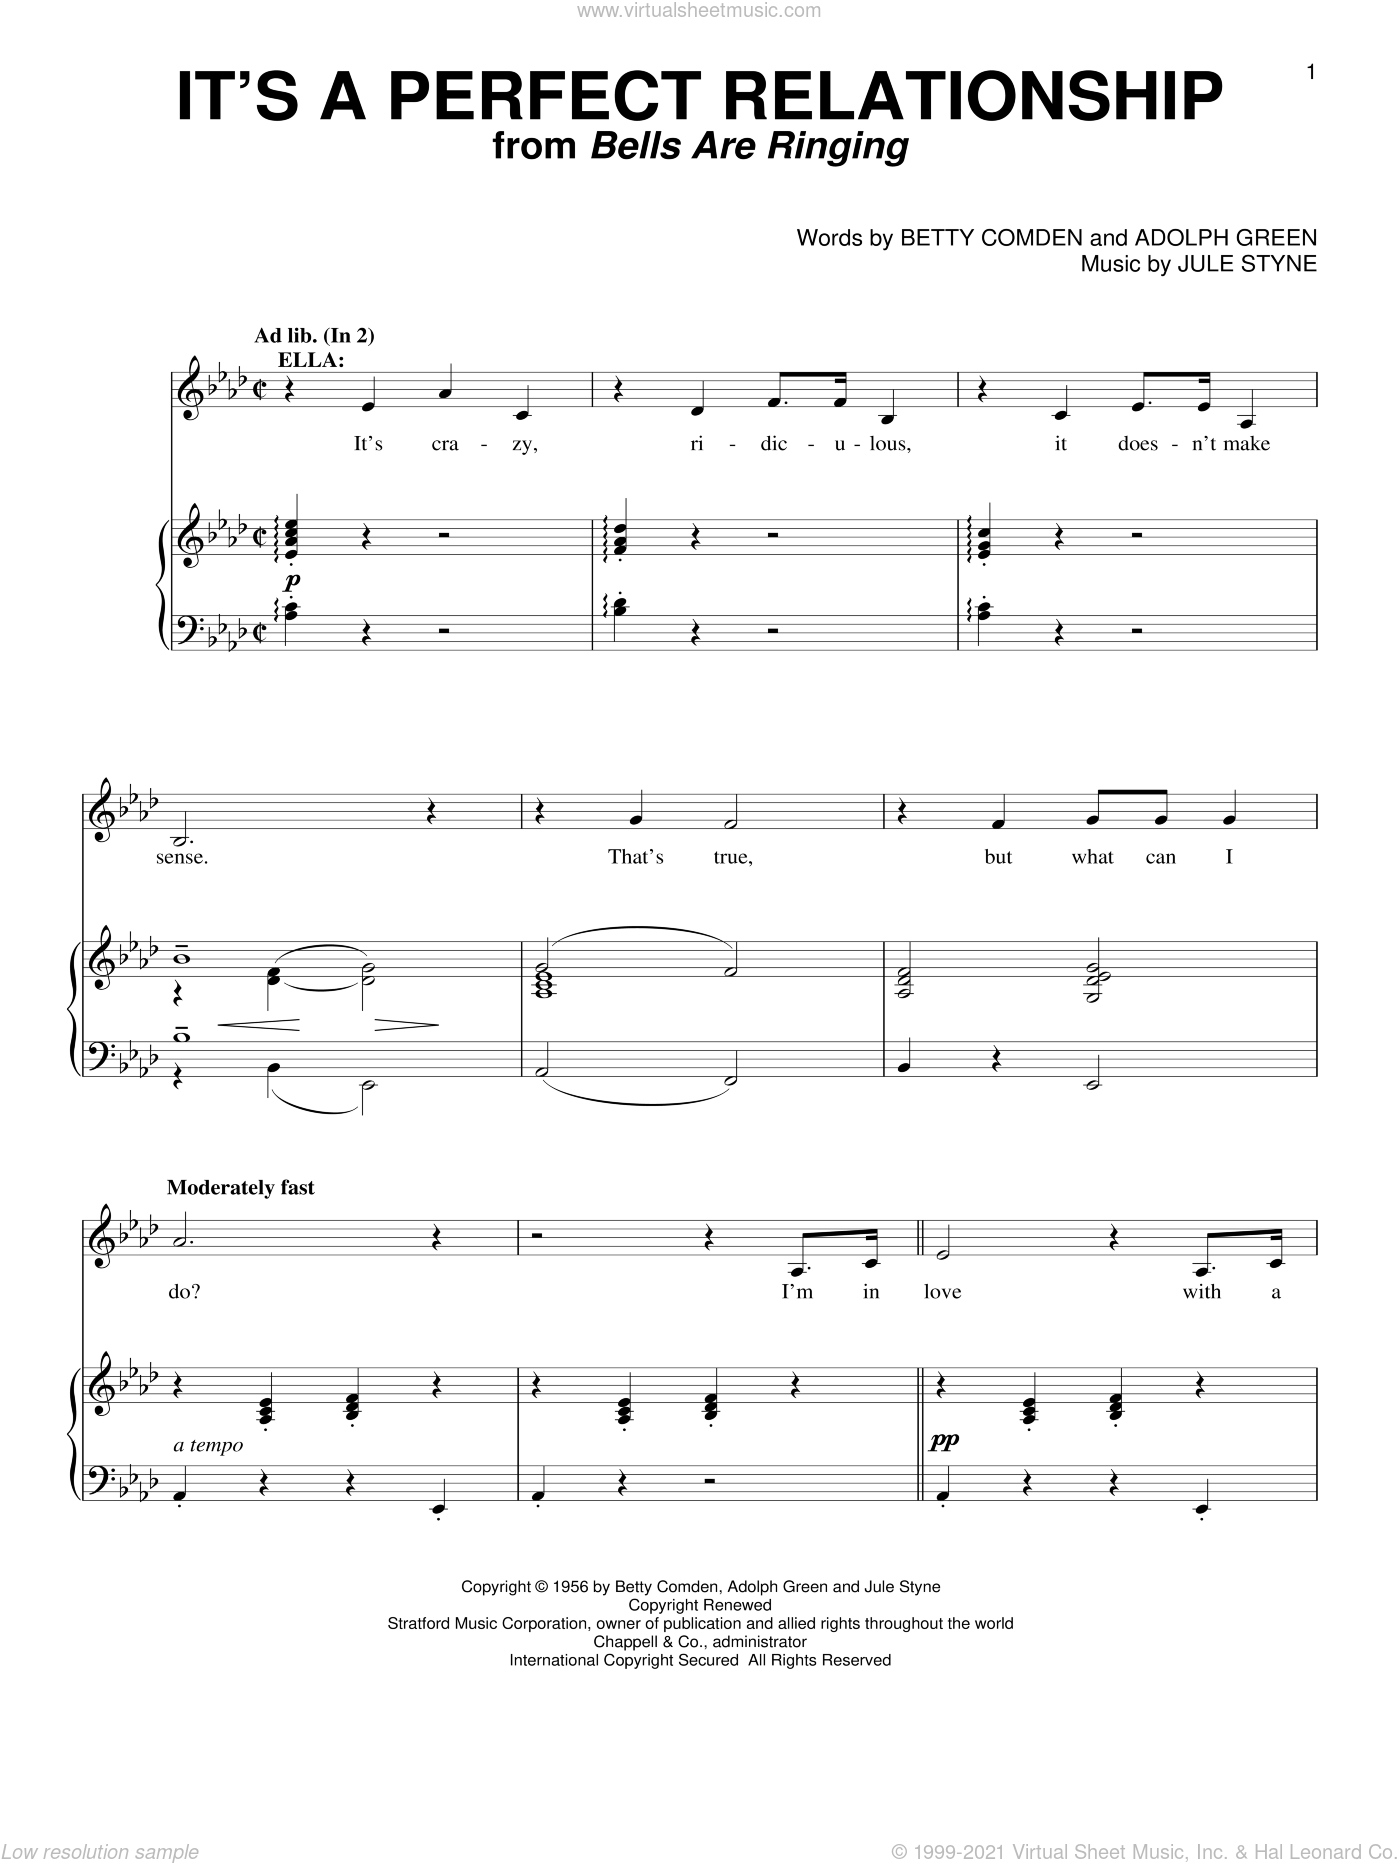 It's A Perfect Relationship sheet music for voice and piano by Jule Styne